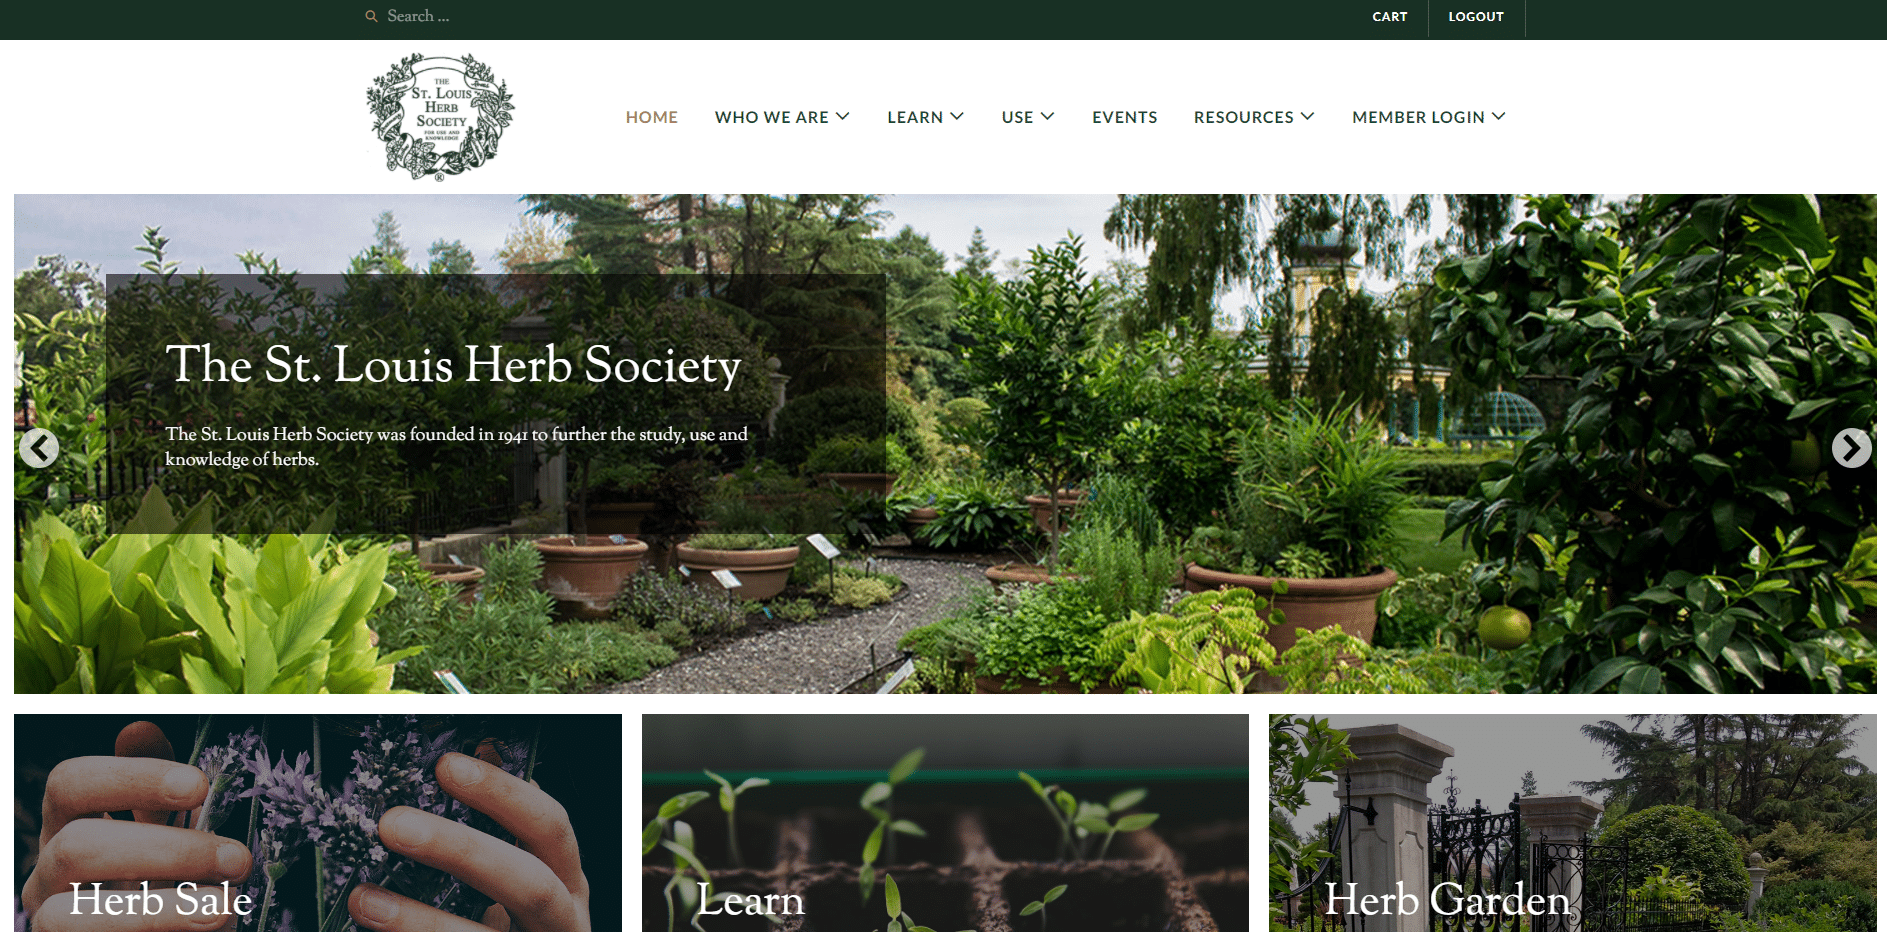 St. Louis Herb Society